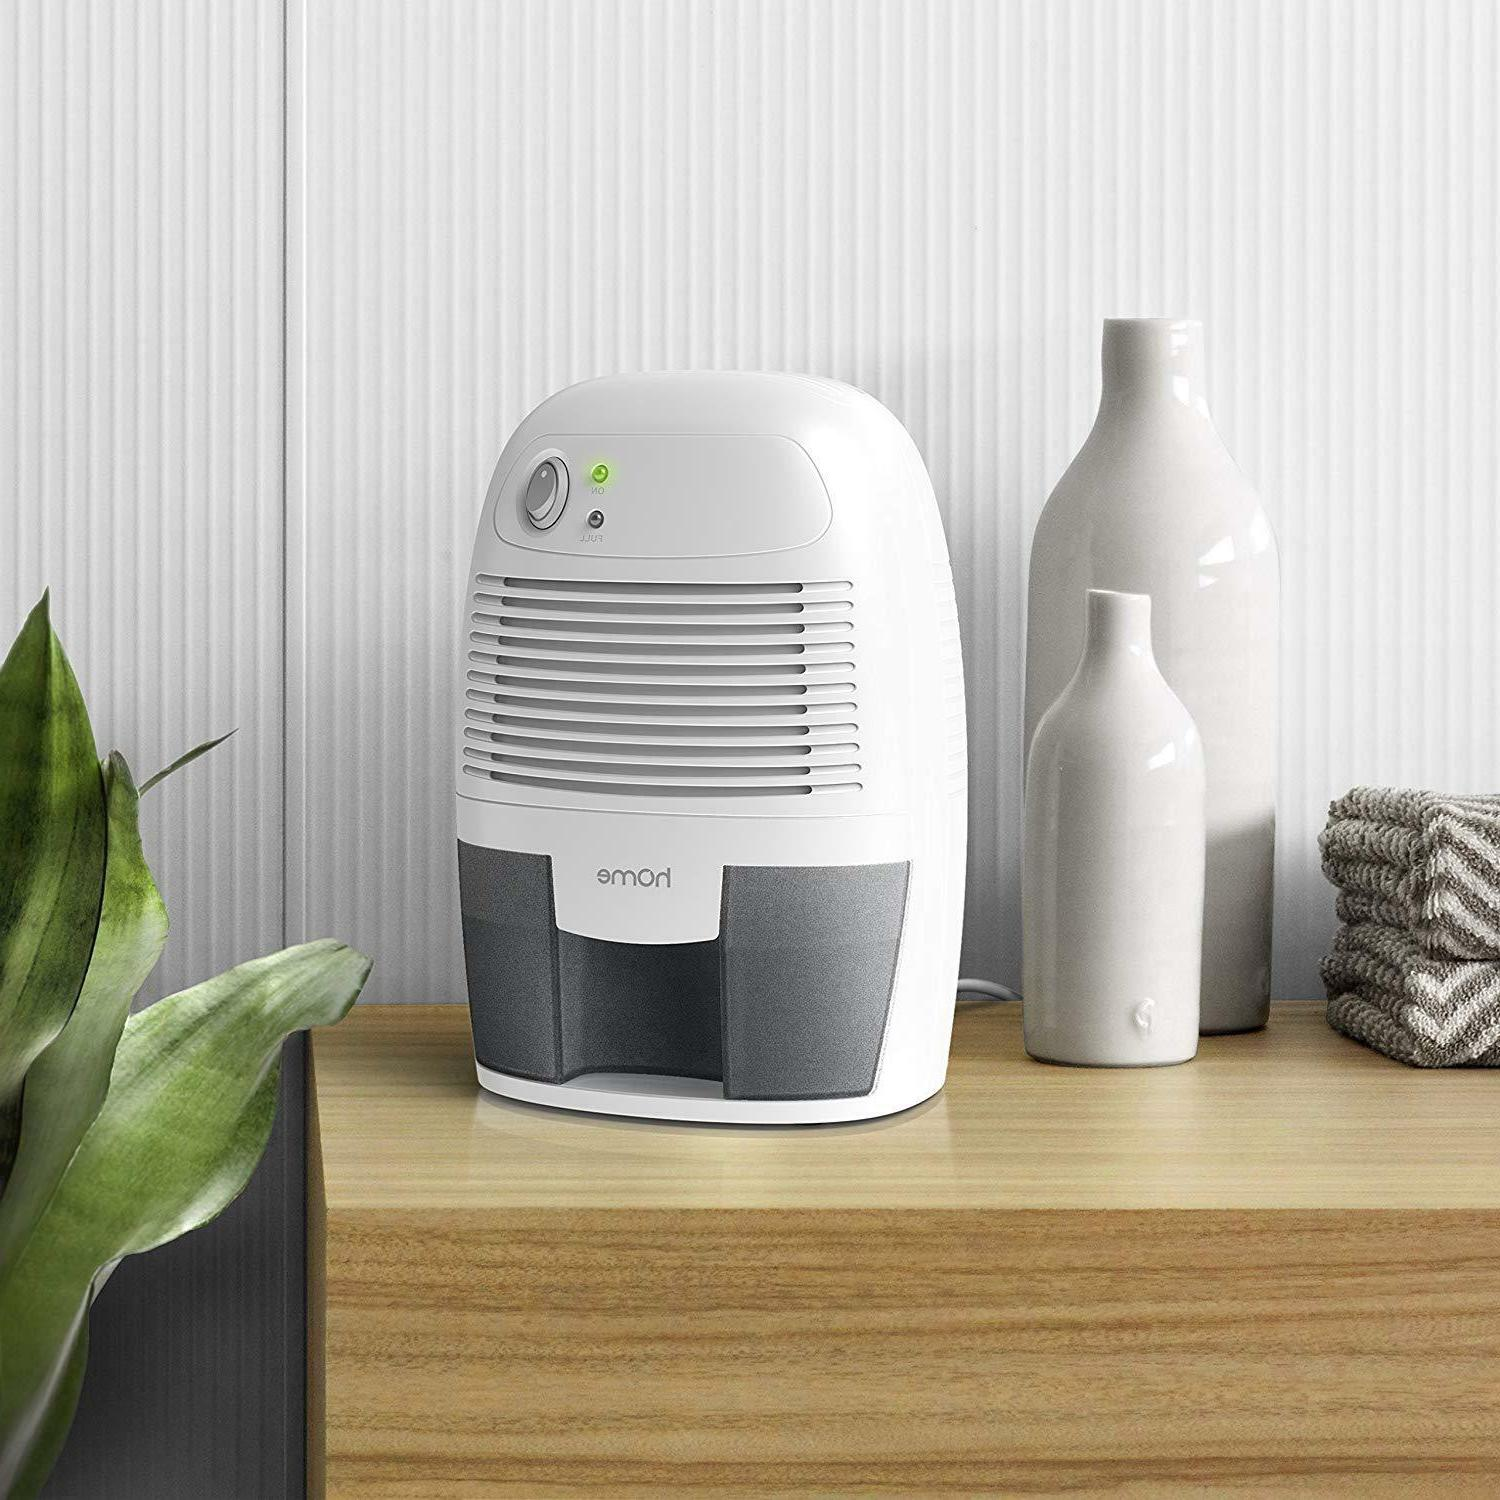 hOmeLabs Small Dehumidifier with Auto Shut-Off - Quietly